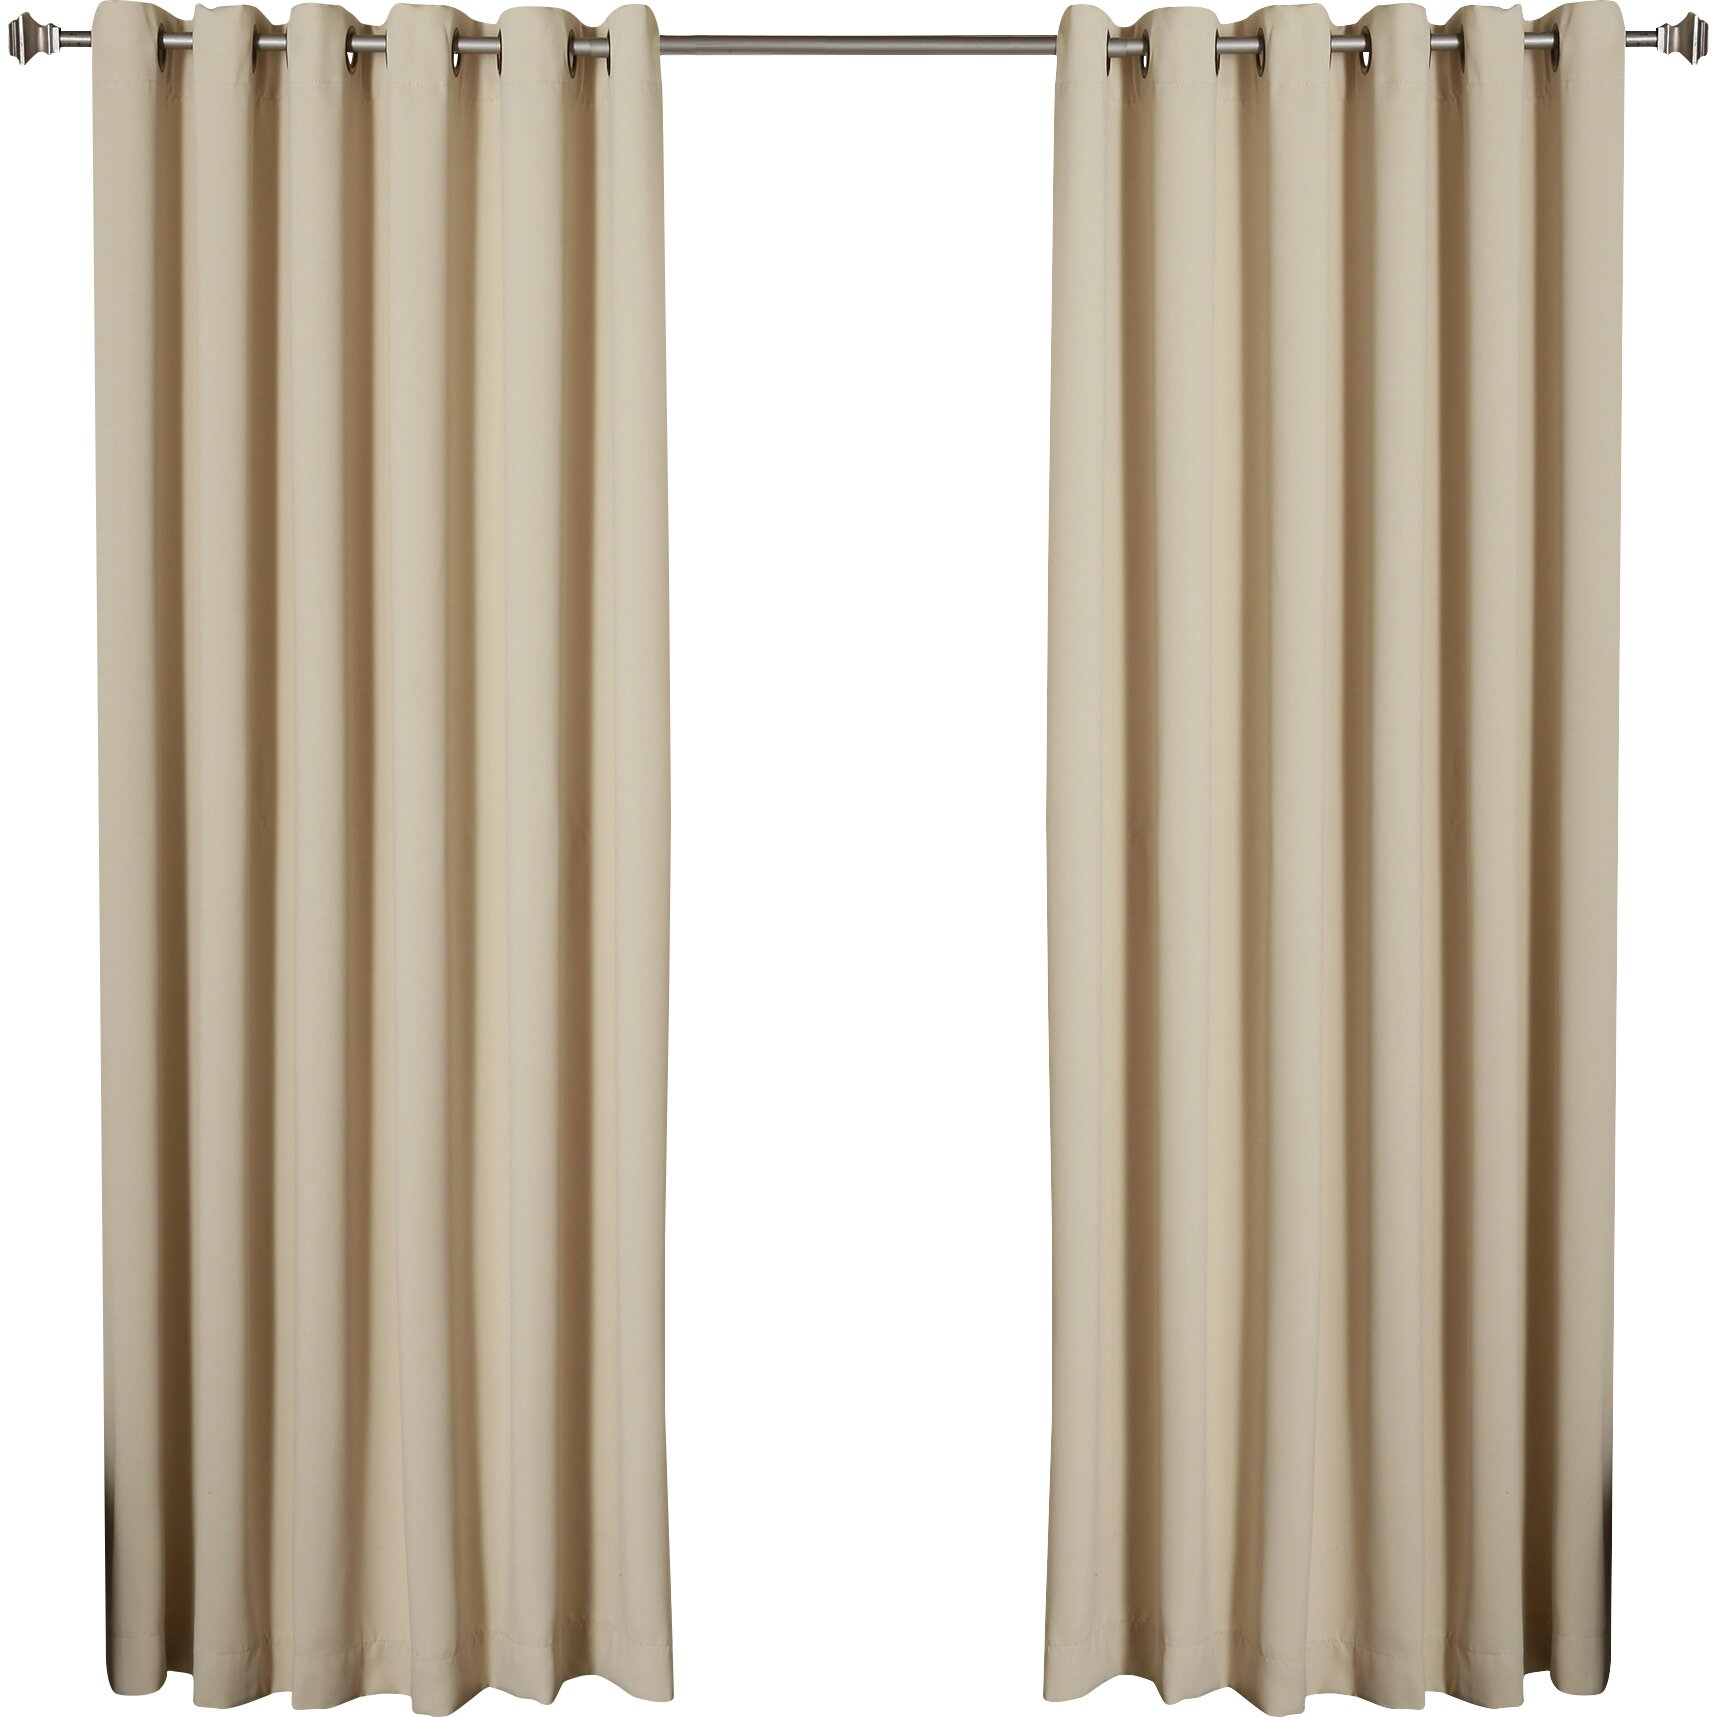 ... Width Thermal Blackout Single Curtain Panel by Best Home Fashion, Inc